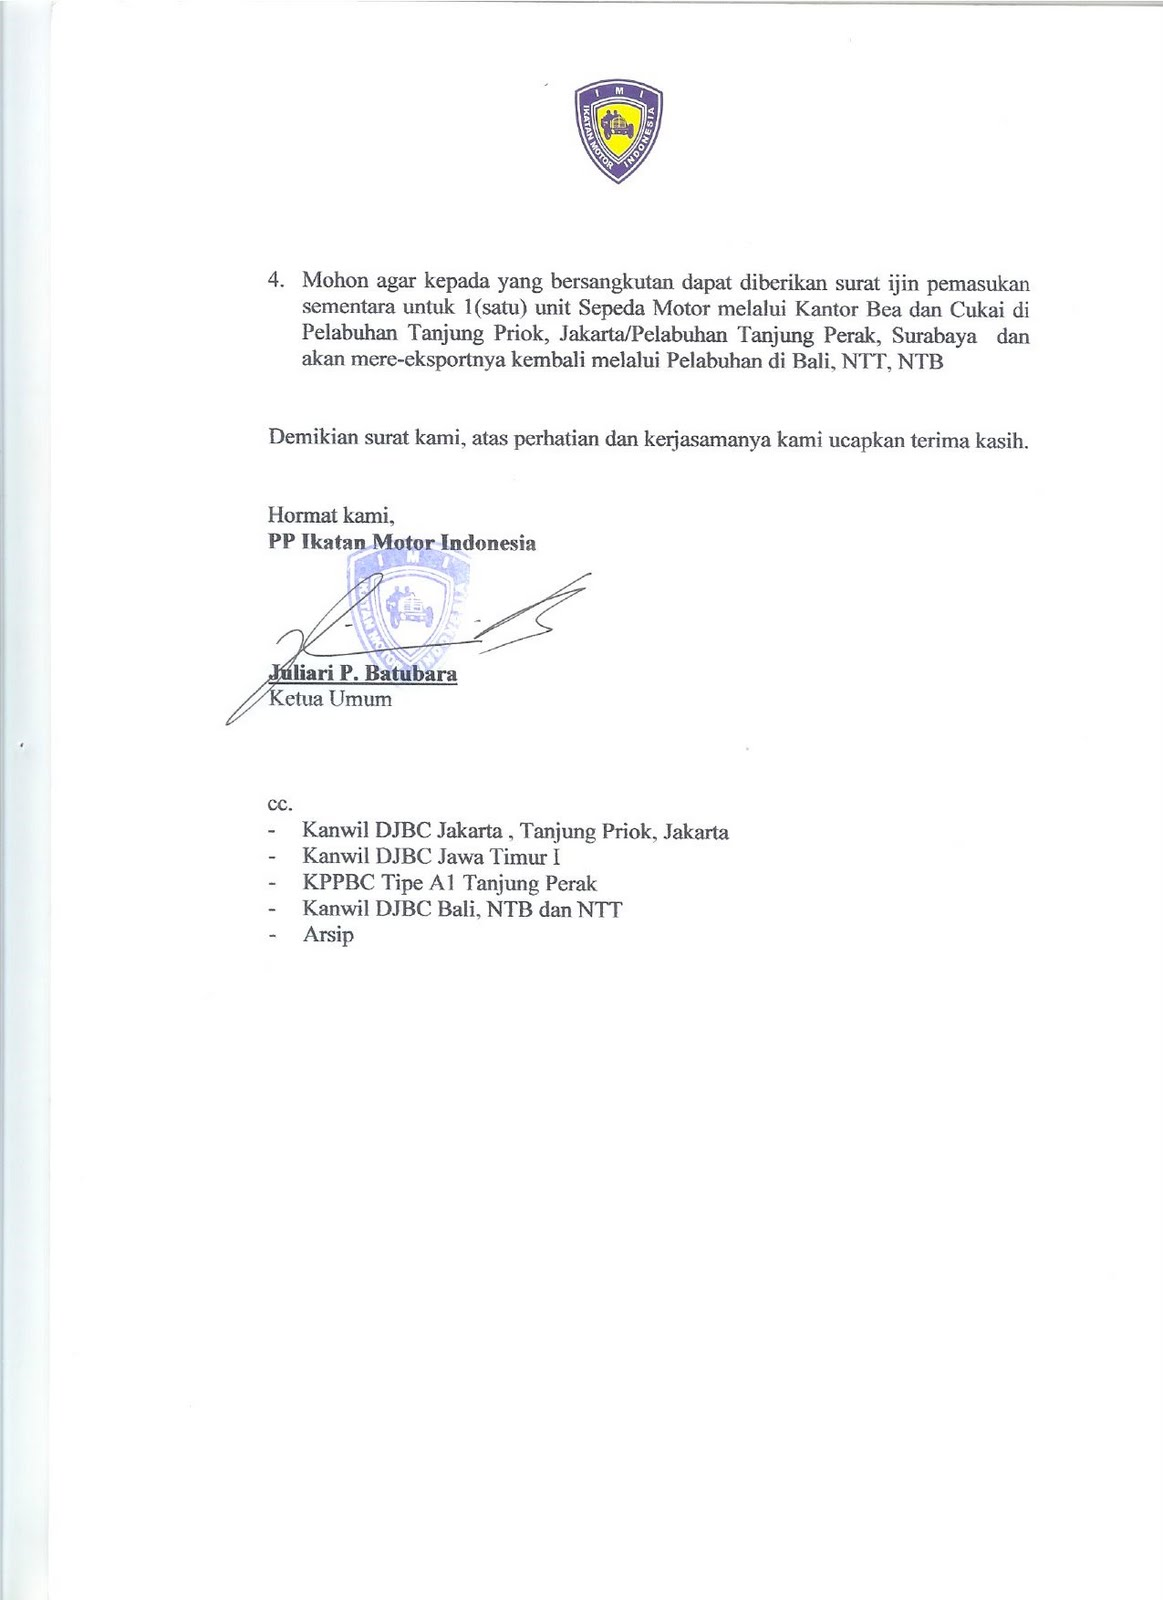 Sample Invitation Letter To Us Consulate For Business Visa Sample Of